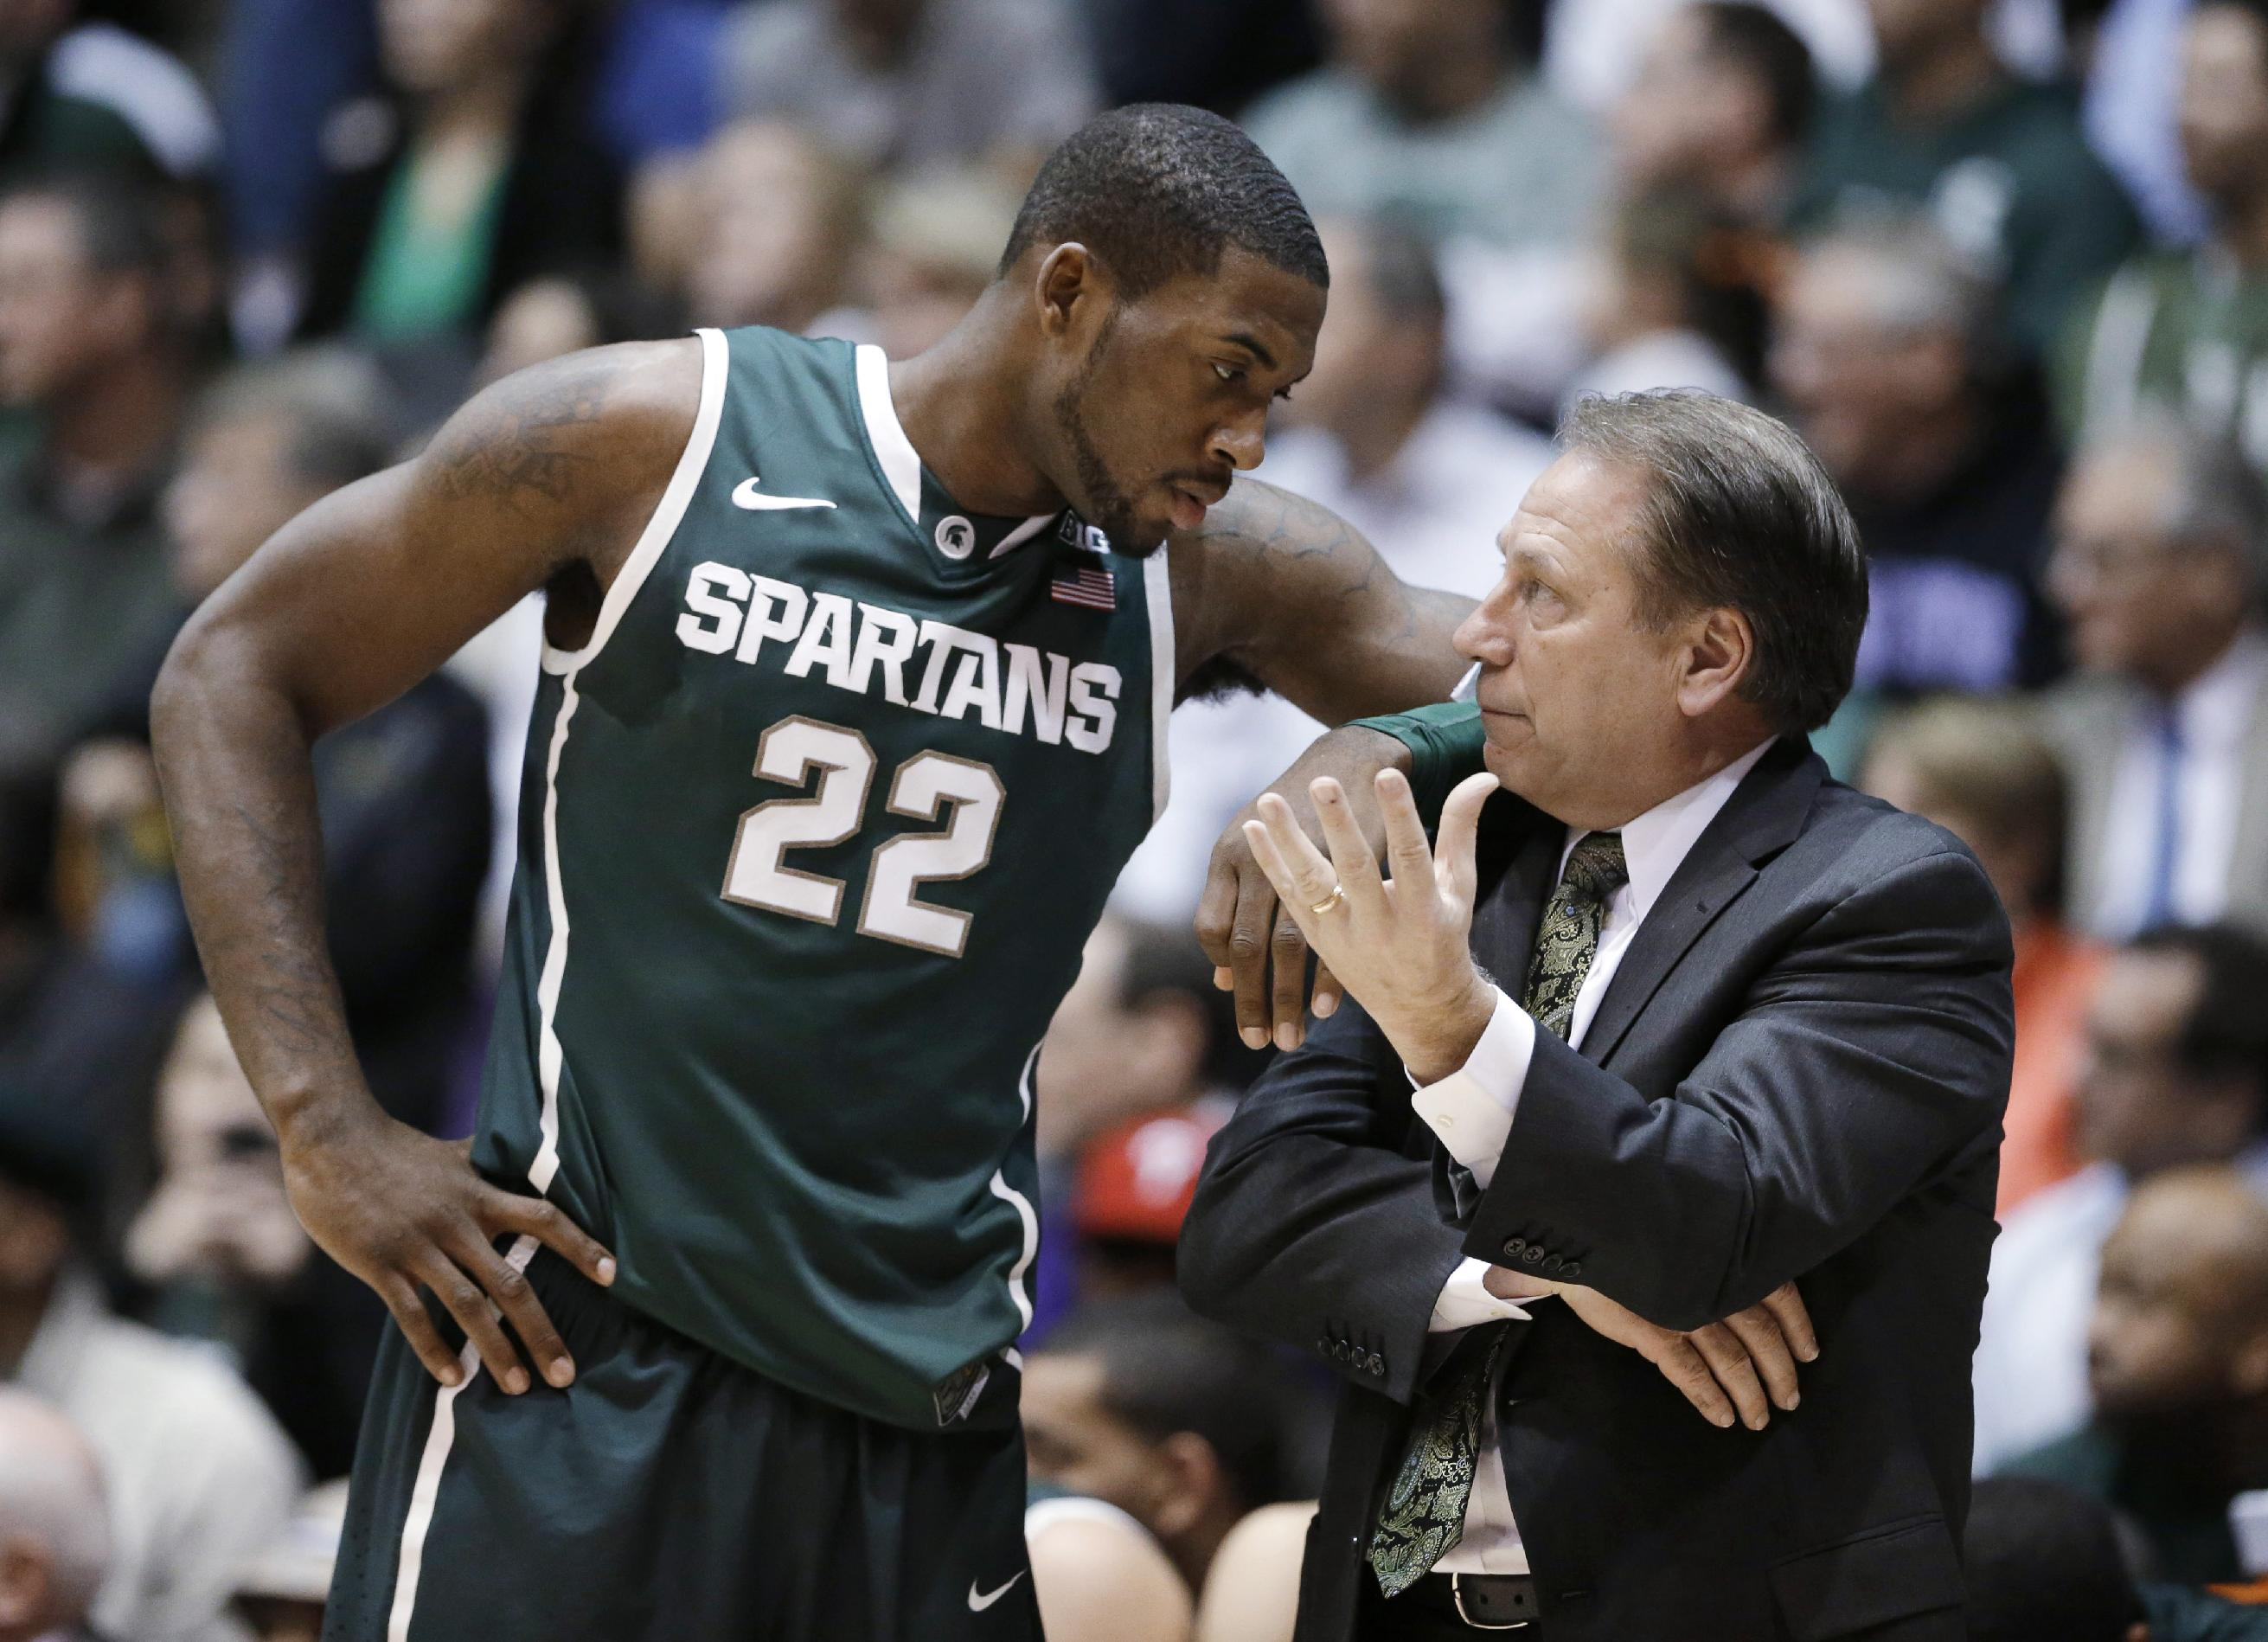 Michigan State signs 6-7 forward Marvin Clark